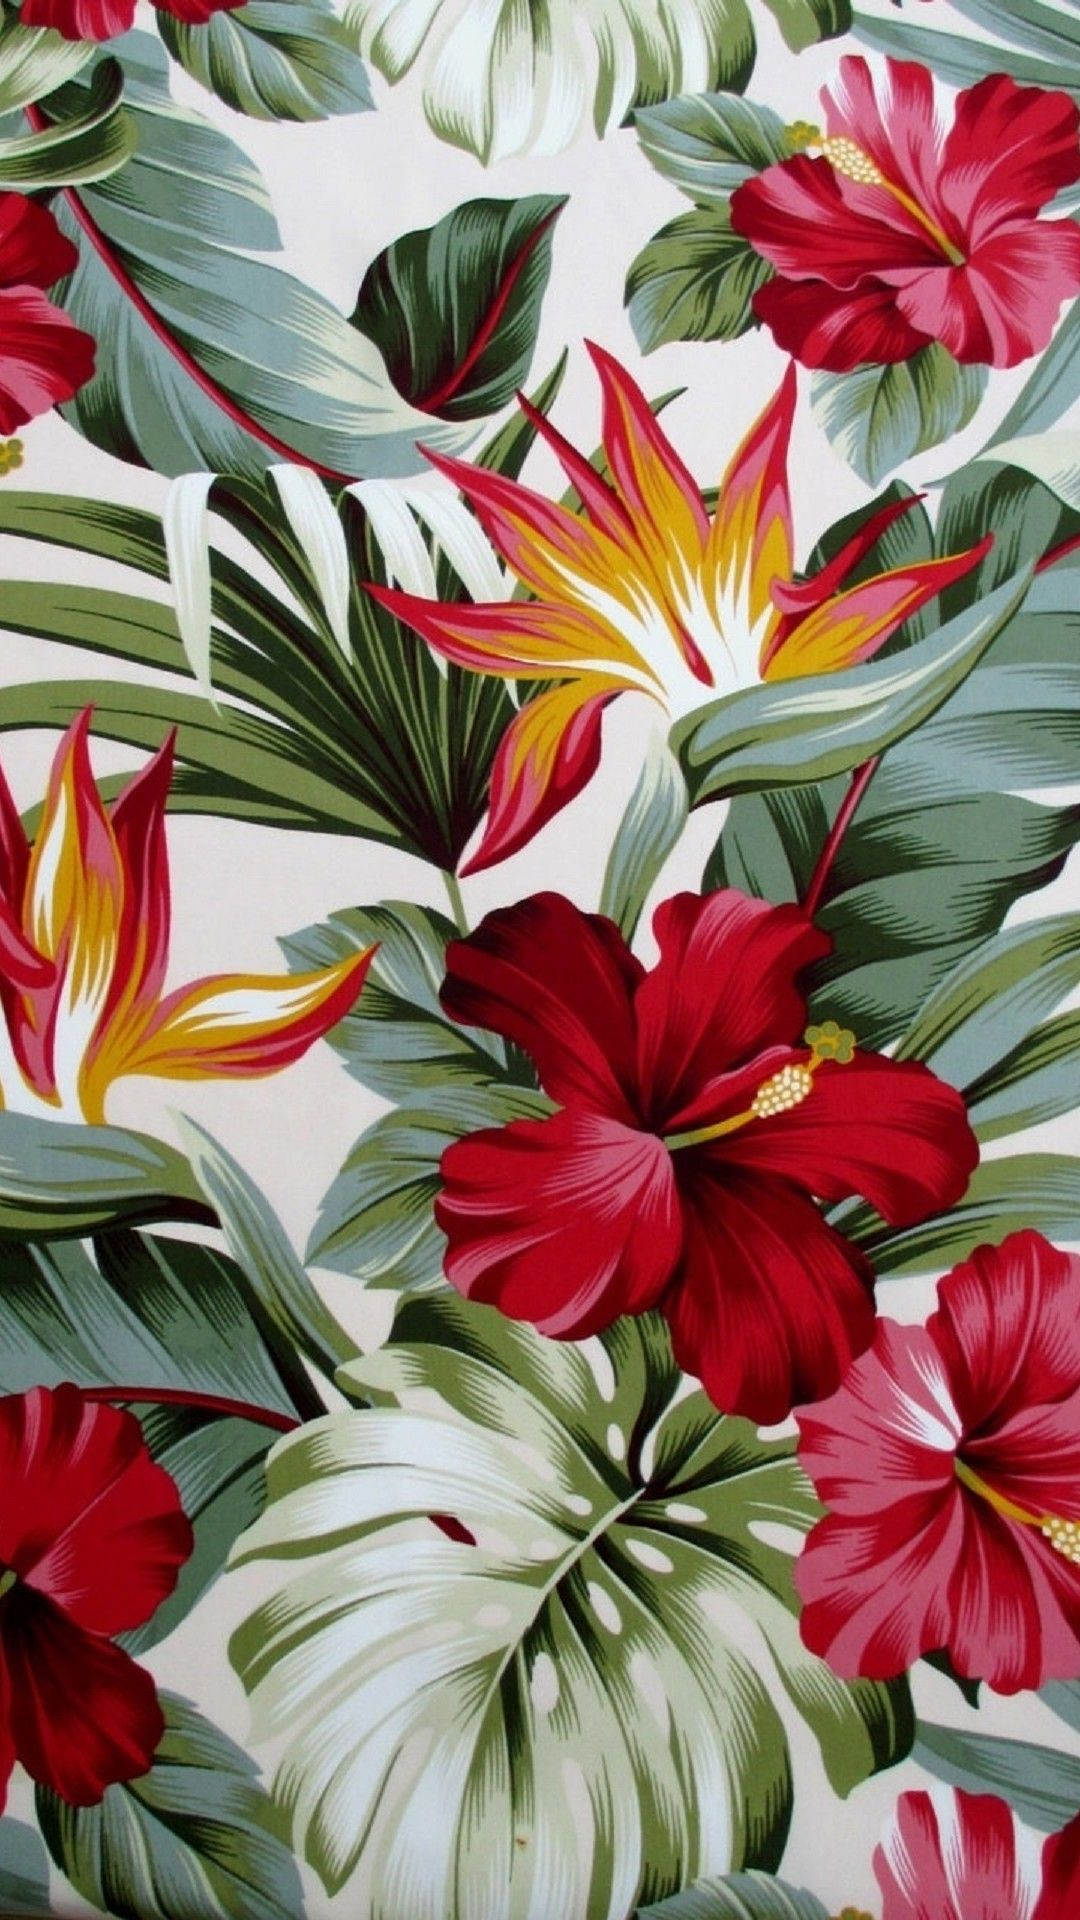 Tropical Flowers Red Hibiscus Tap To See More Florence Broadhurst